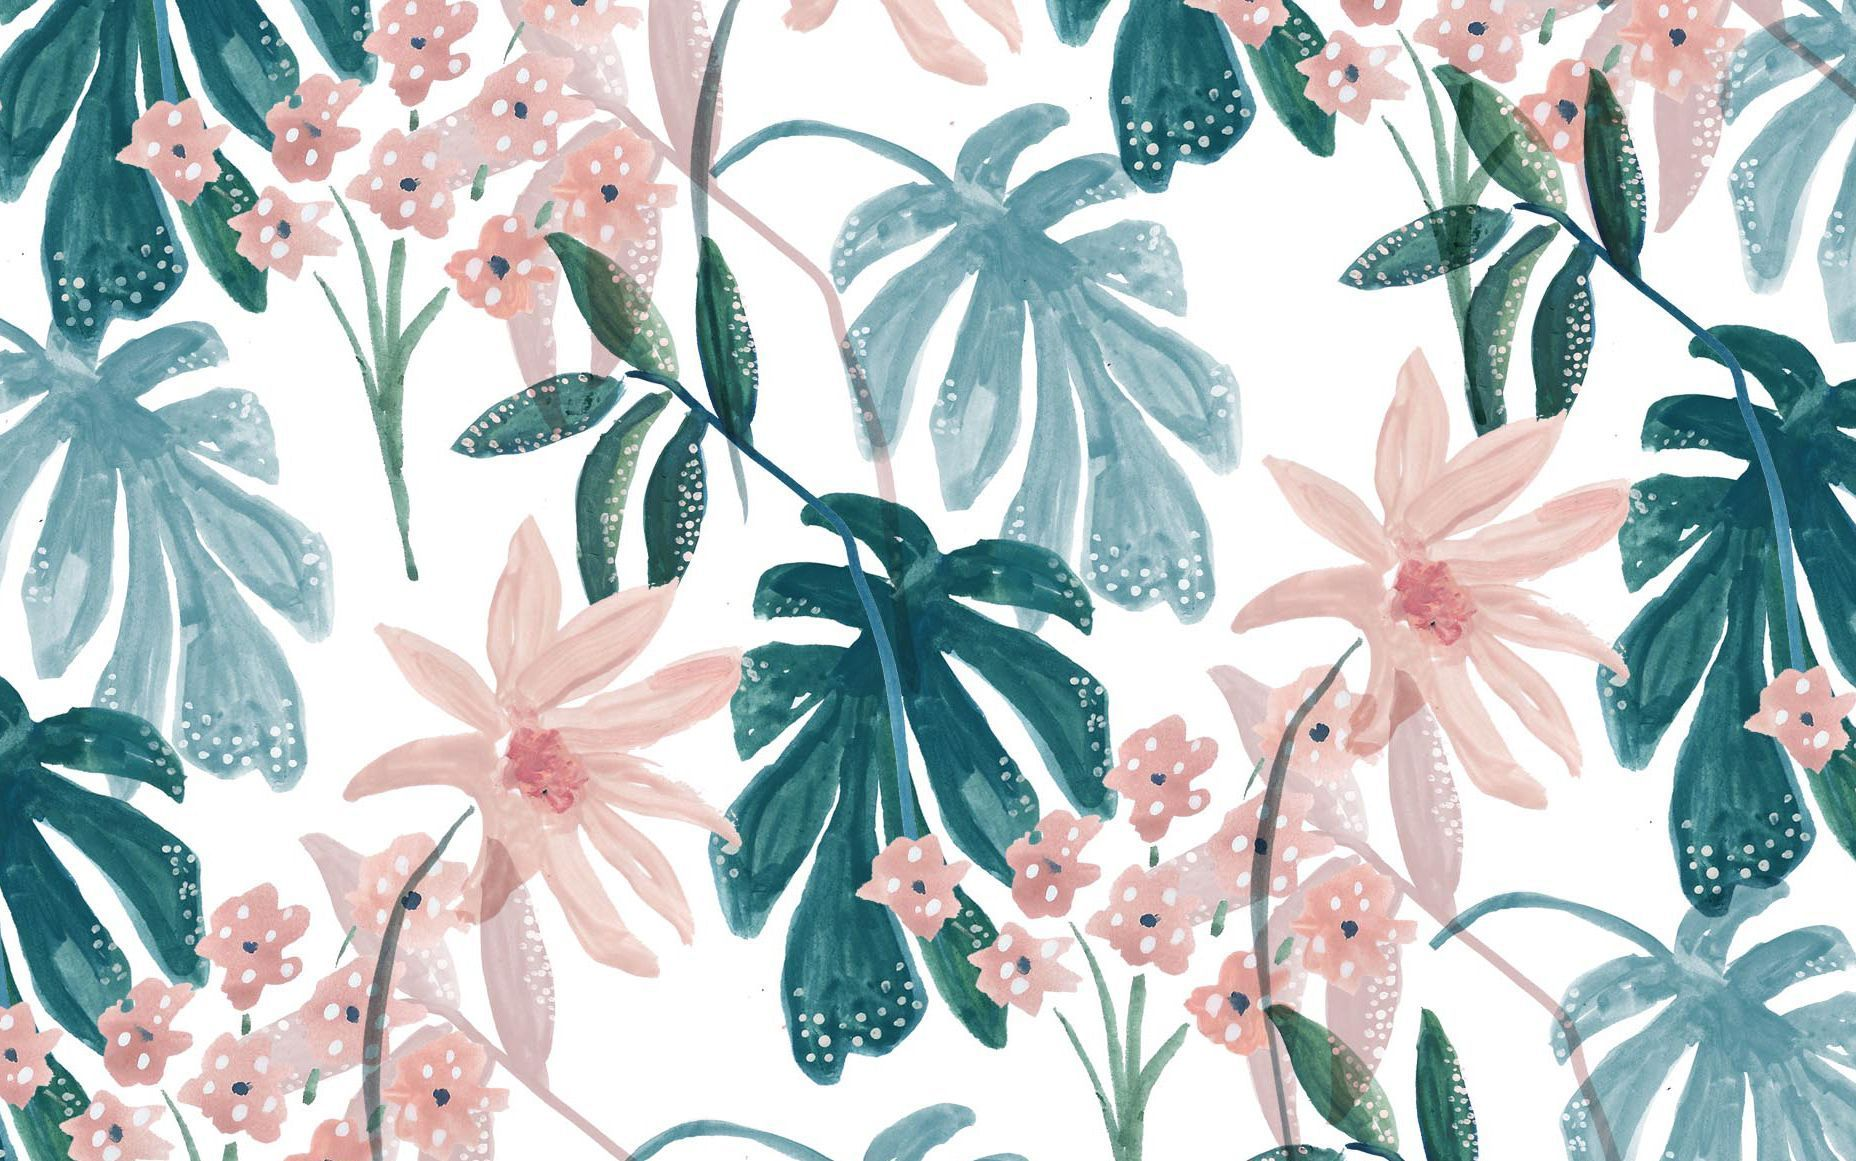 1856x1161 Pin By Pinelopi Zoura On Illustrations And Textures Pinterest Laptop Wallpaper Marble Desktop Wallpaper Macbook Wallpaper